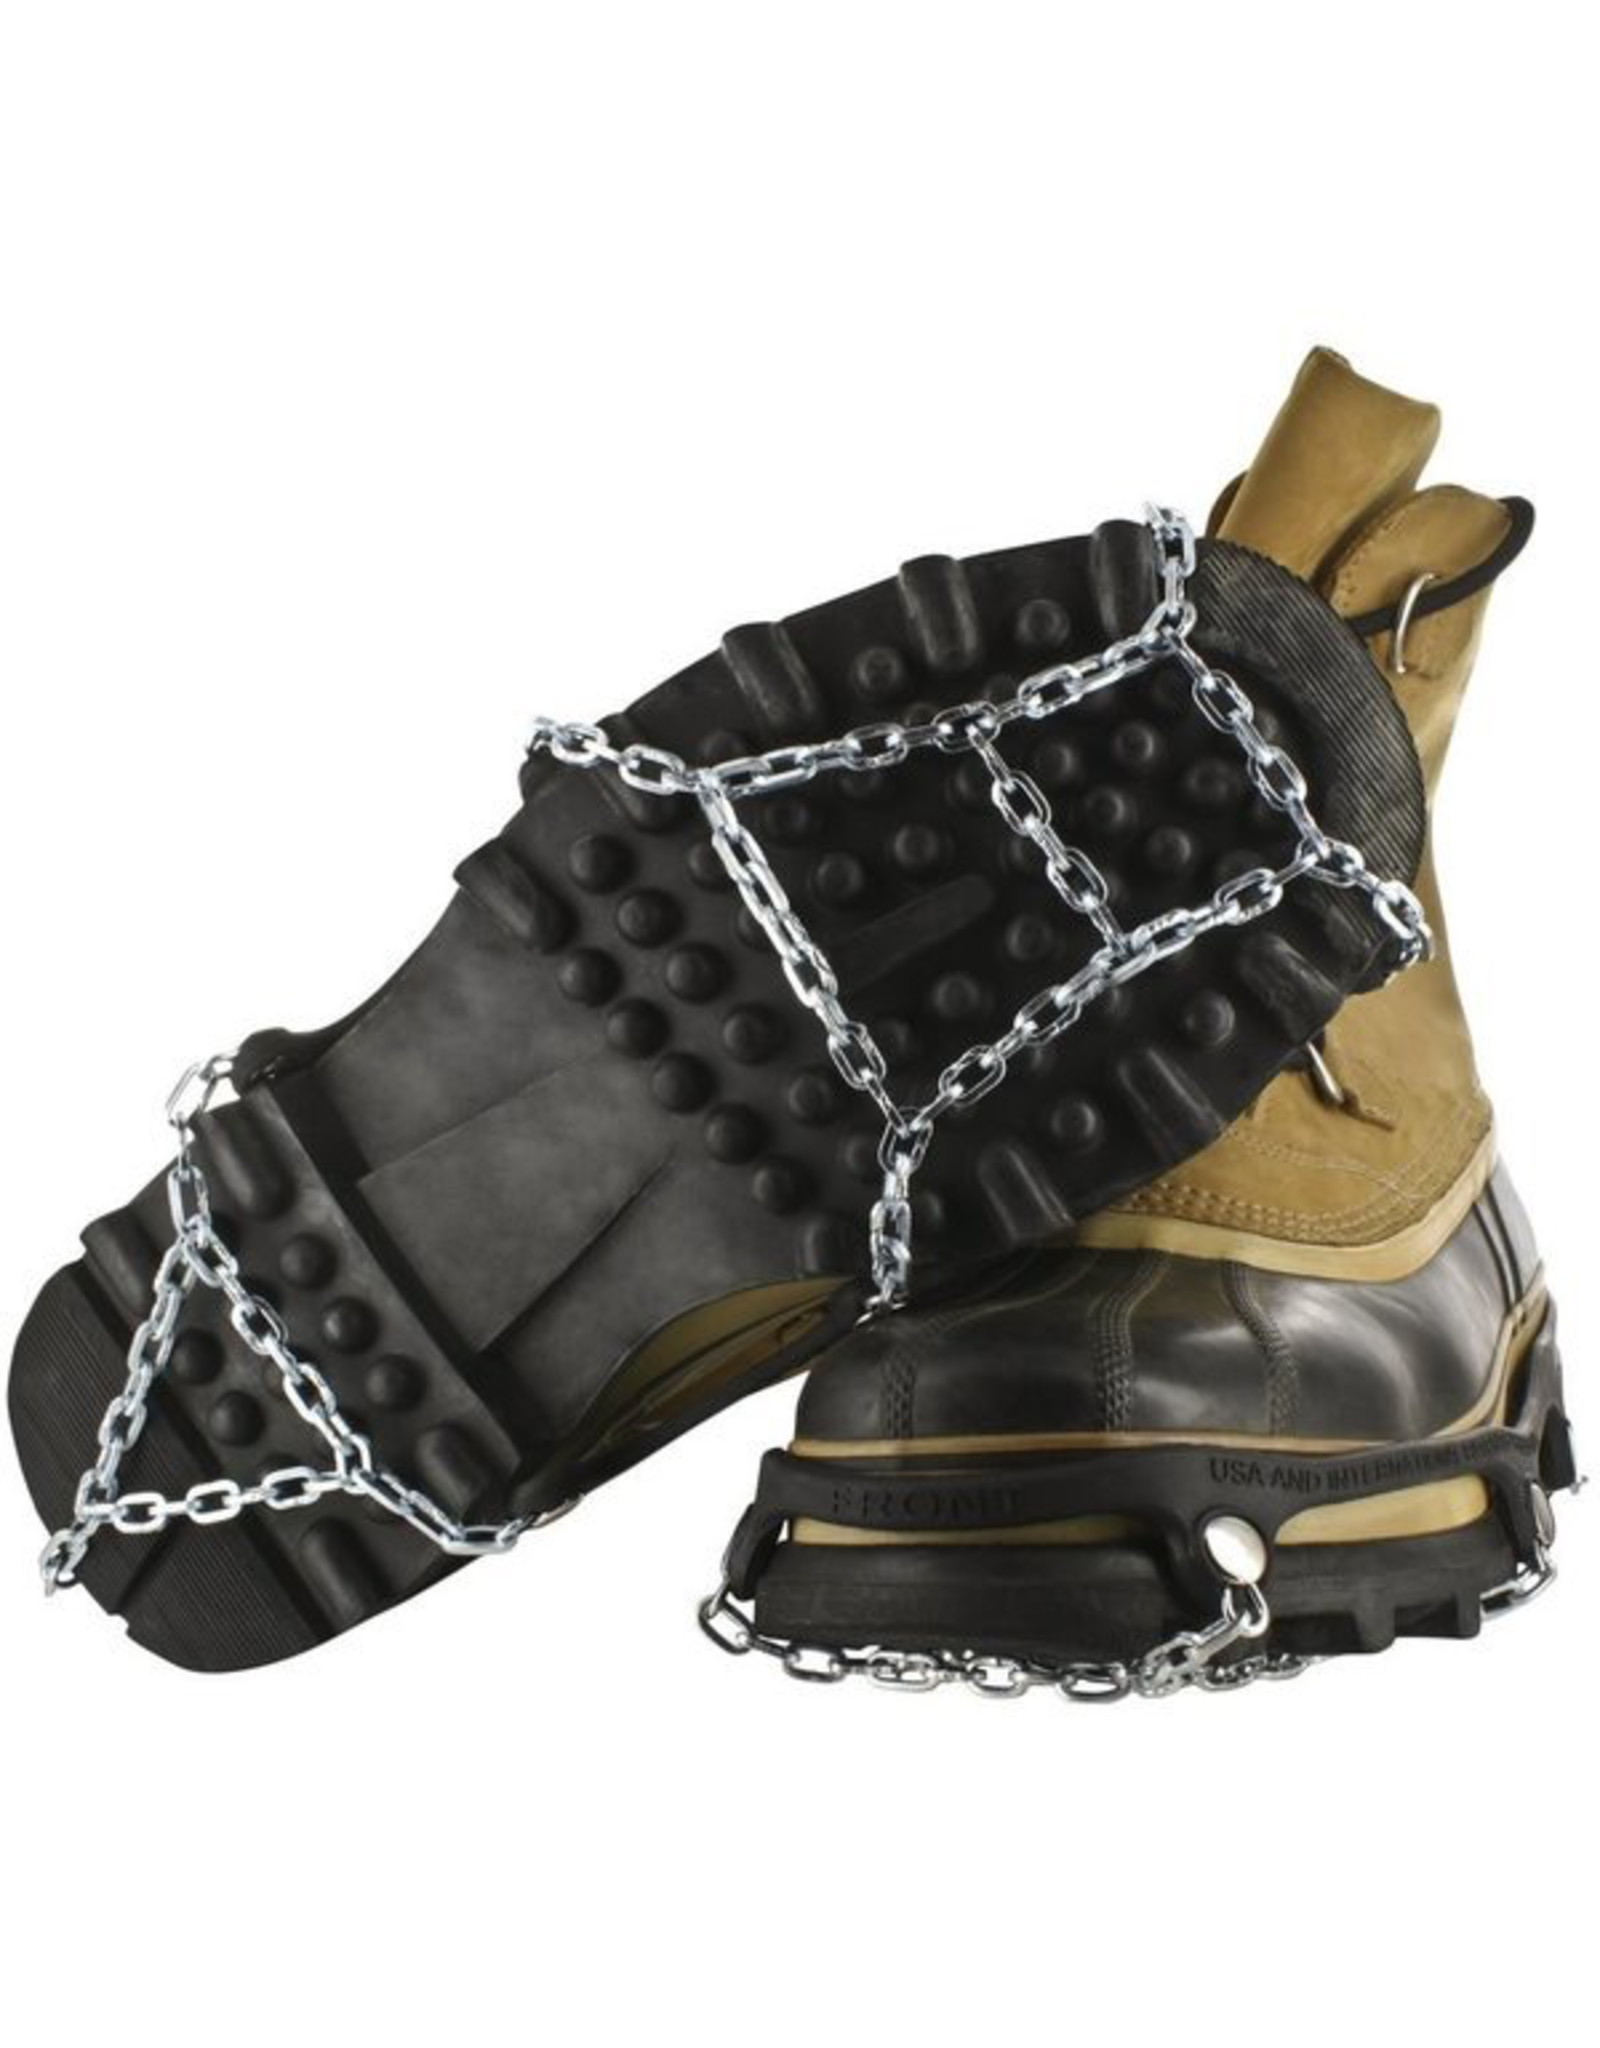 Ice Trekkers IceTrekkers Chains, Size XL